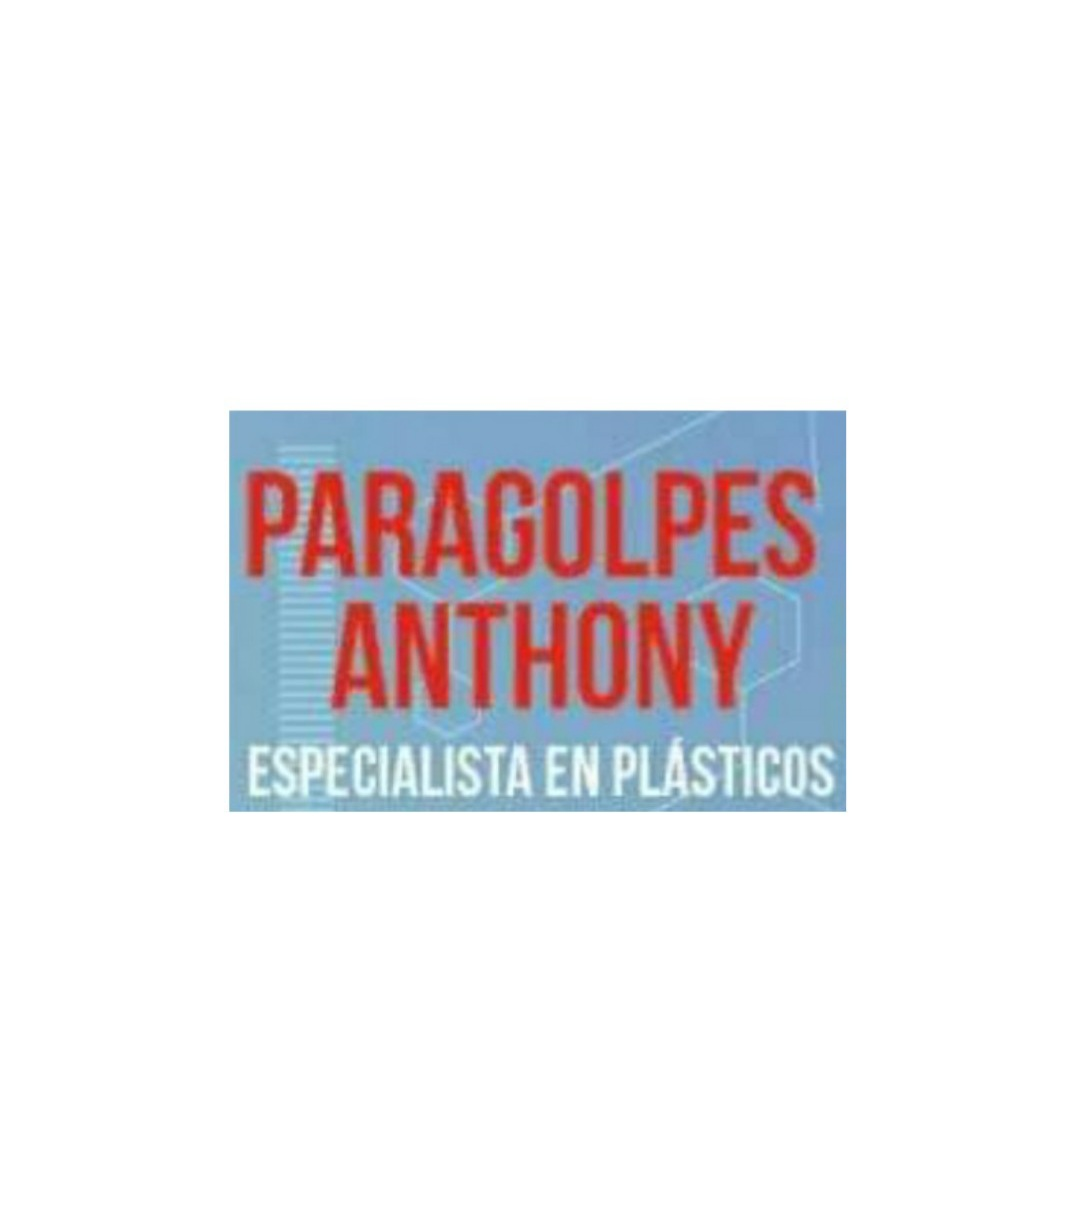 Paragolpes Anthony